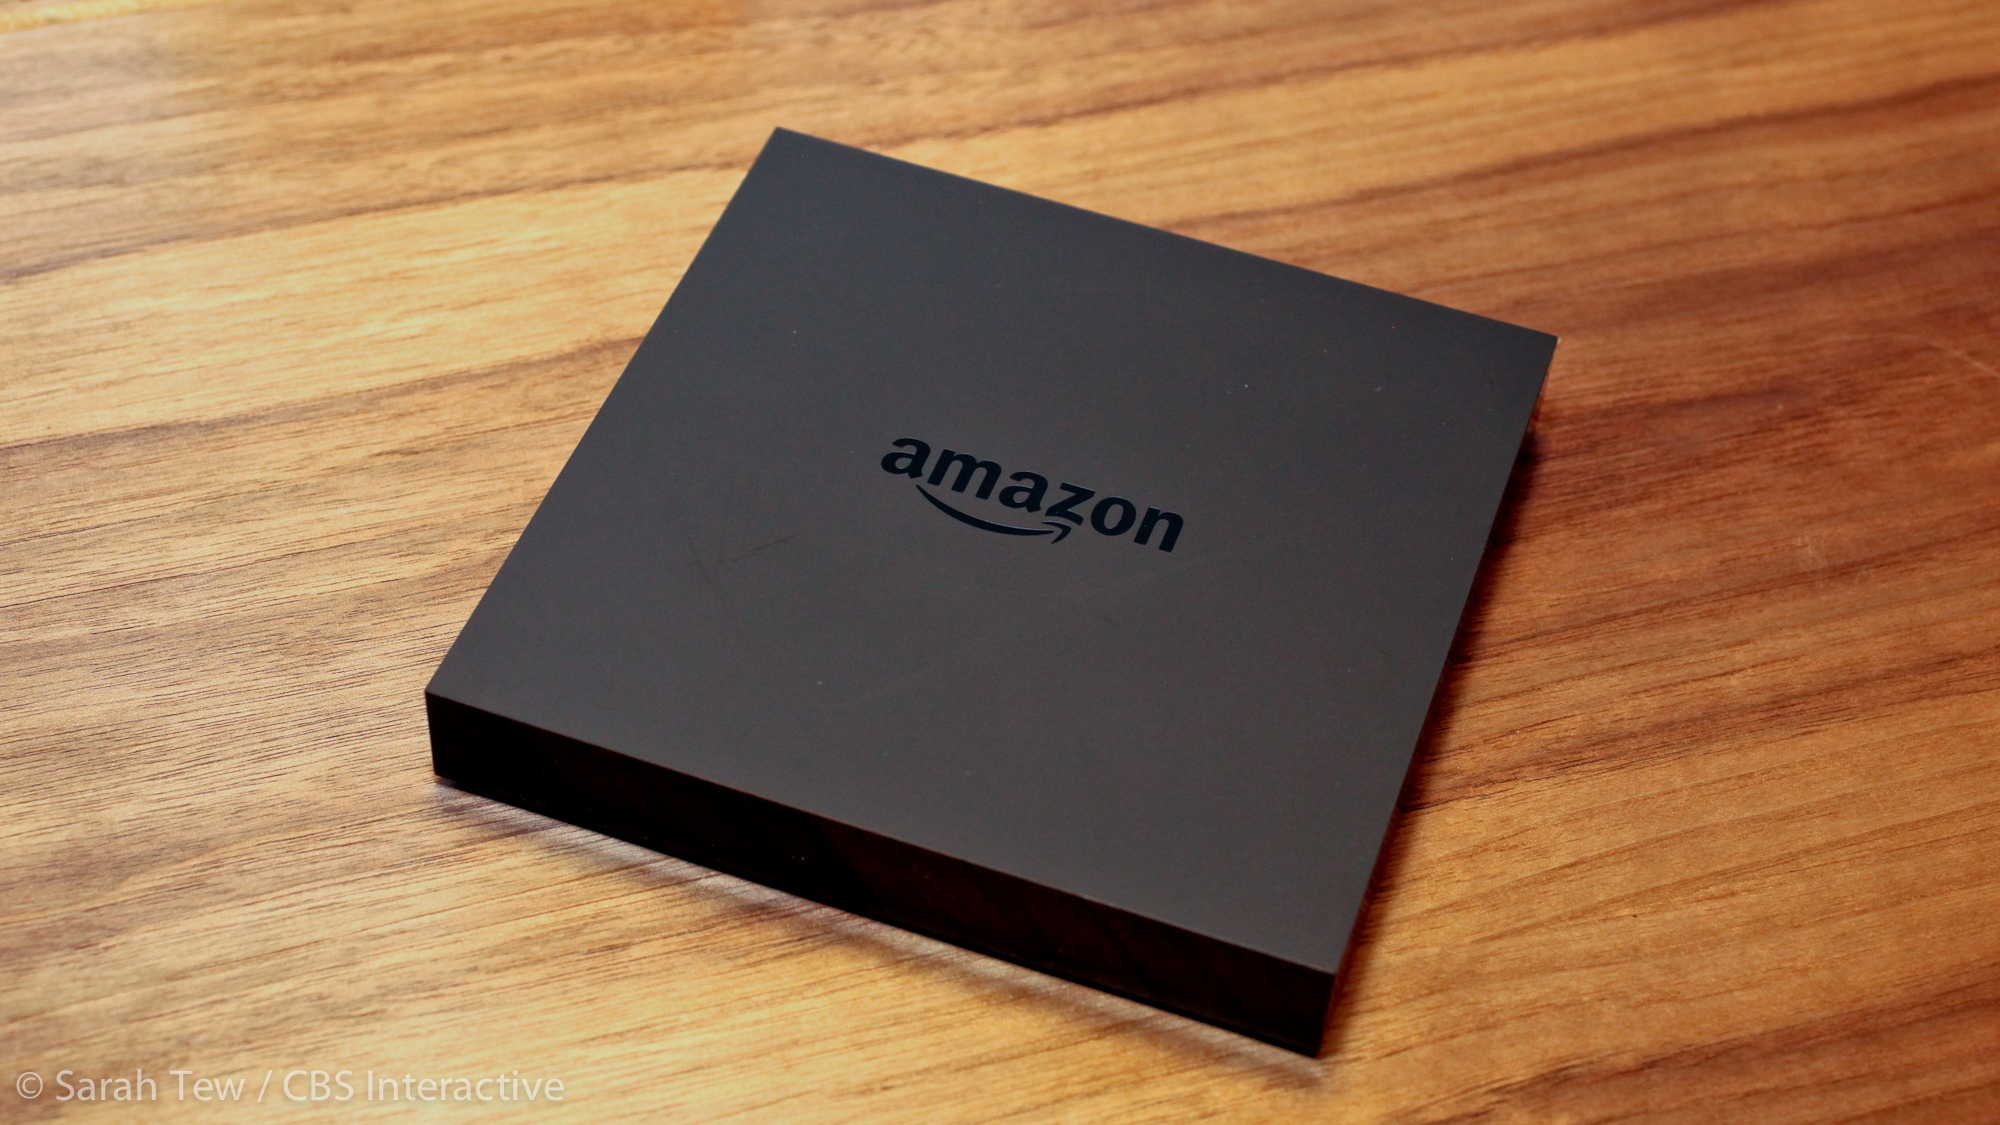 003amazonfiretv-product-photos.jpg